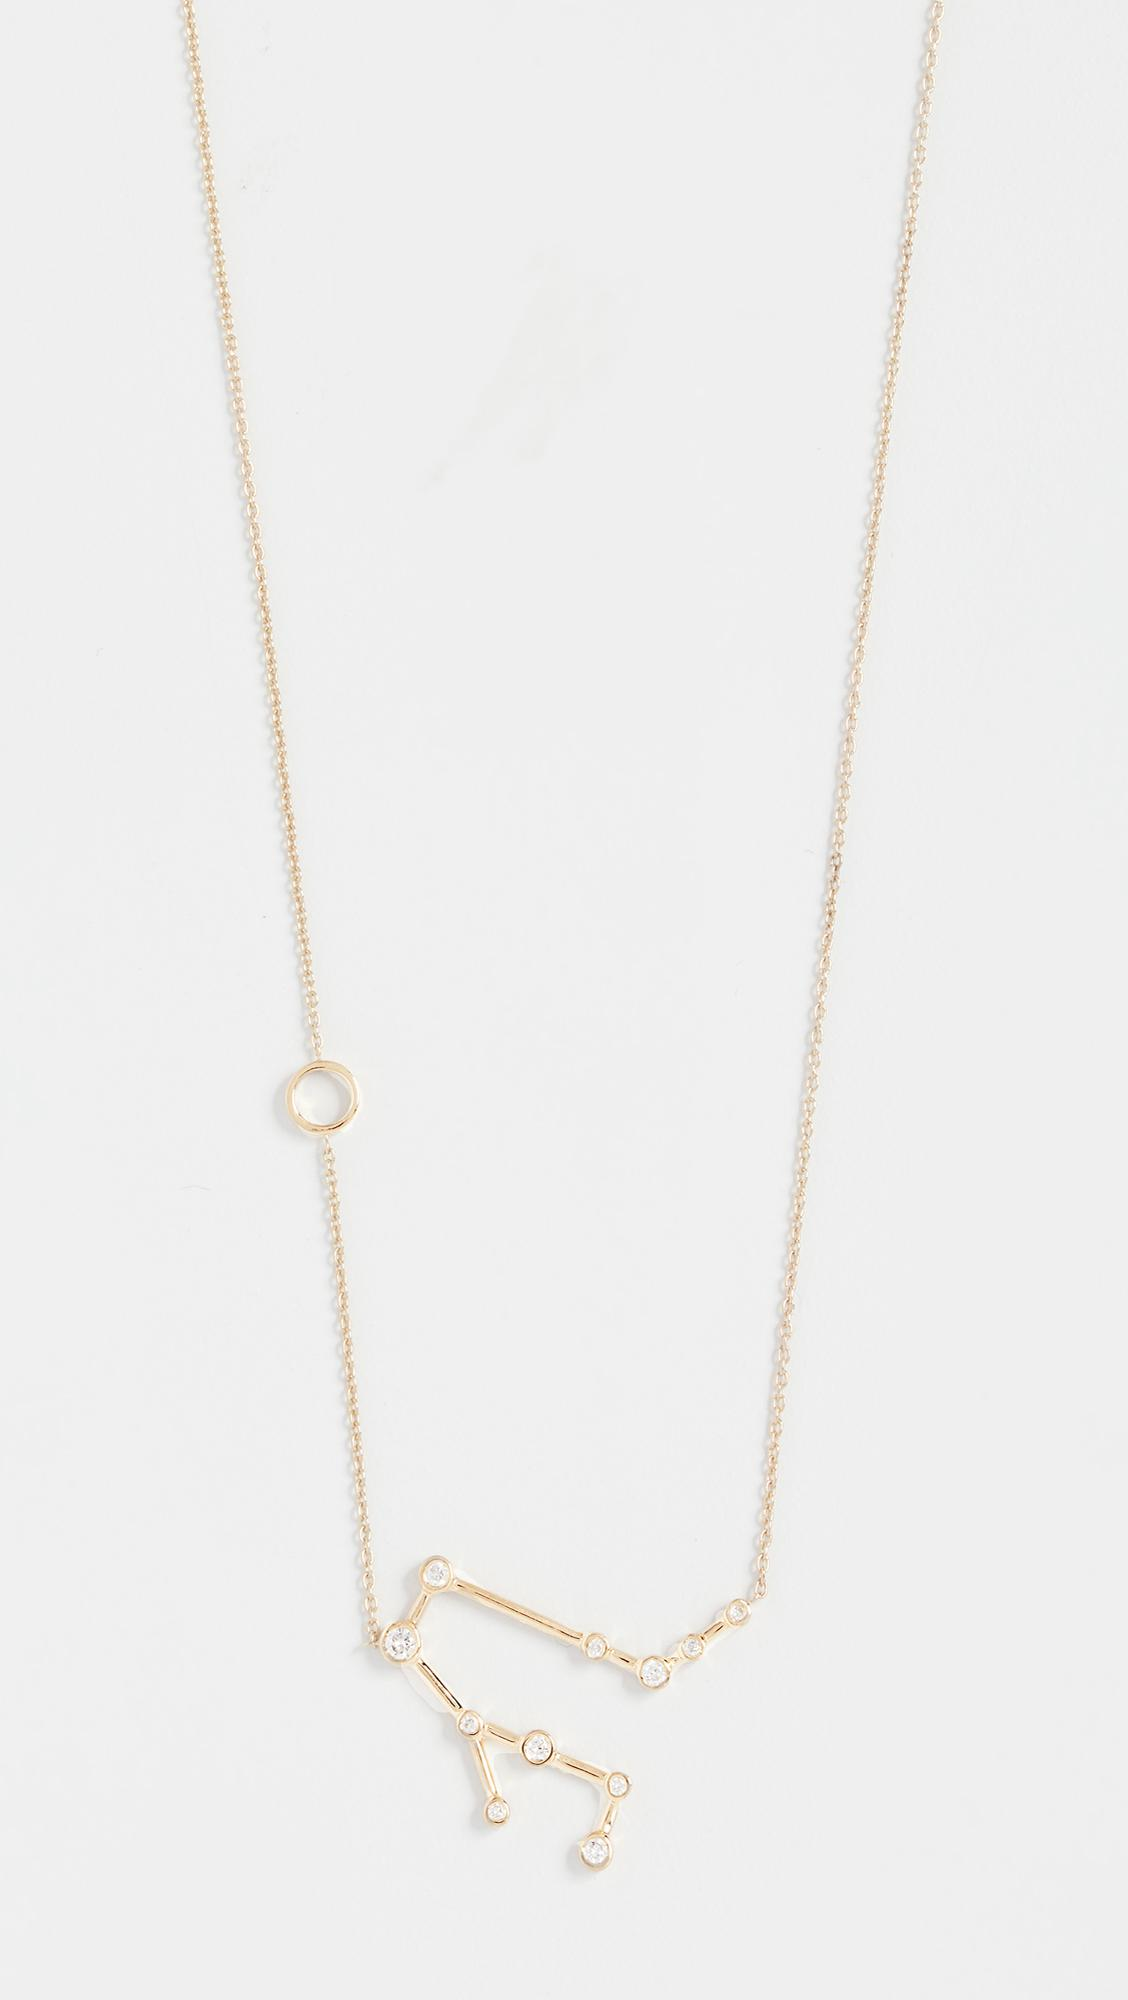 Lulu Frost 14k Gold Gemini Necklace with White Diamonds UhkumUjmBn